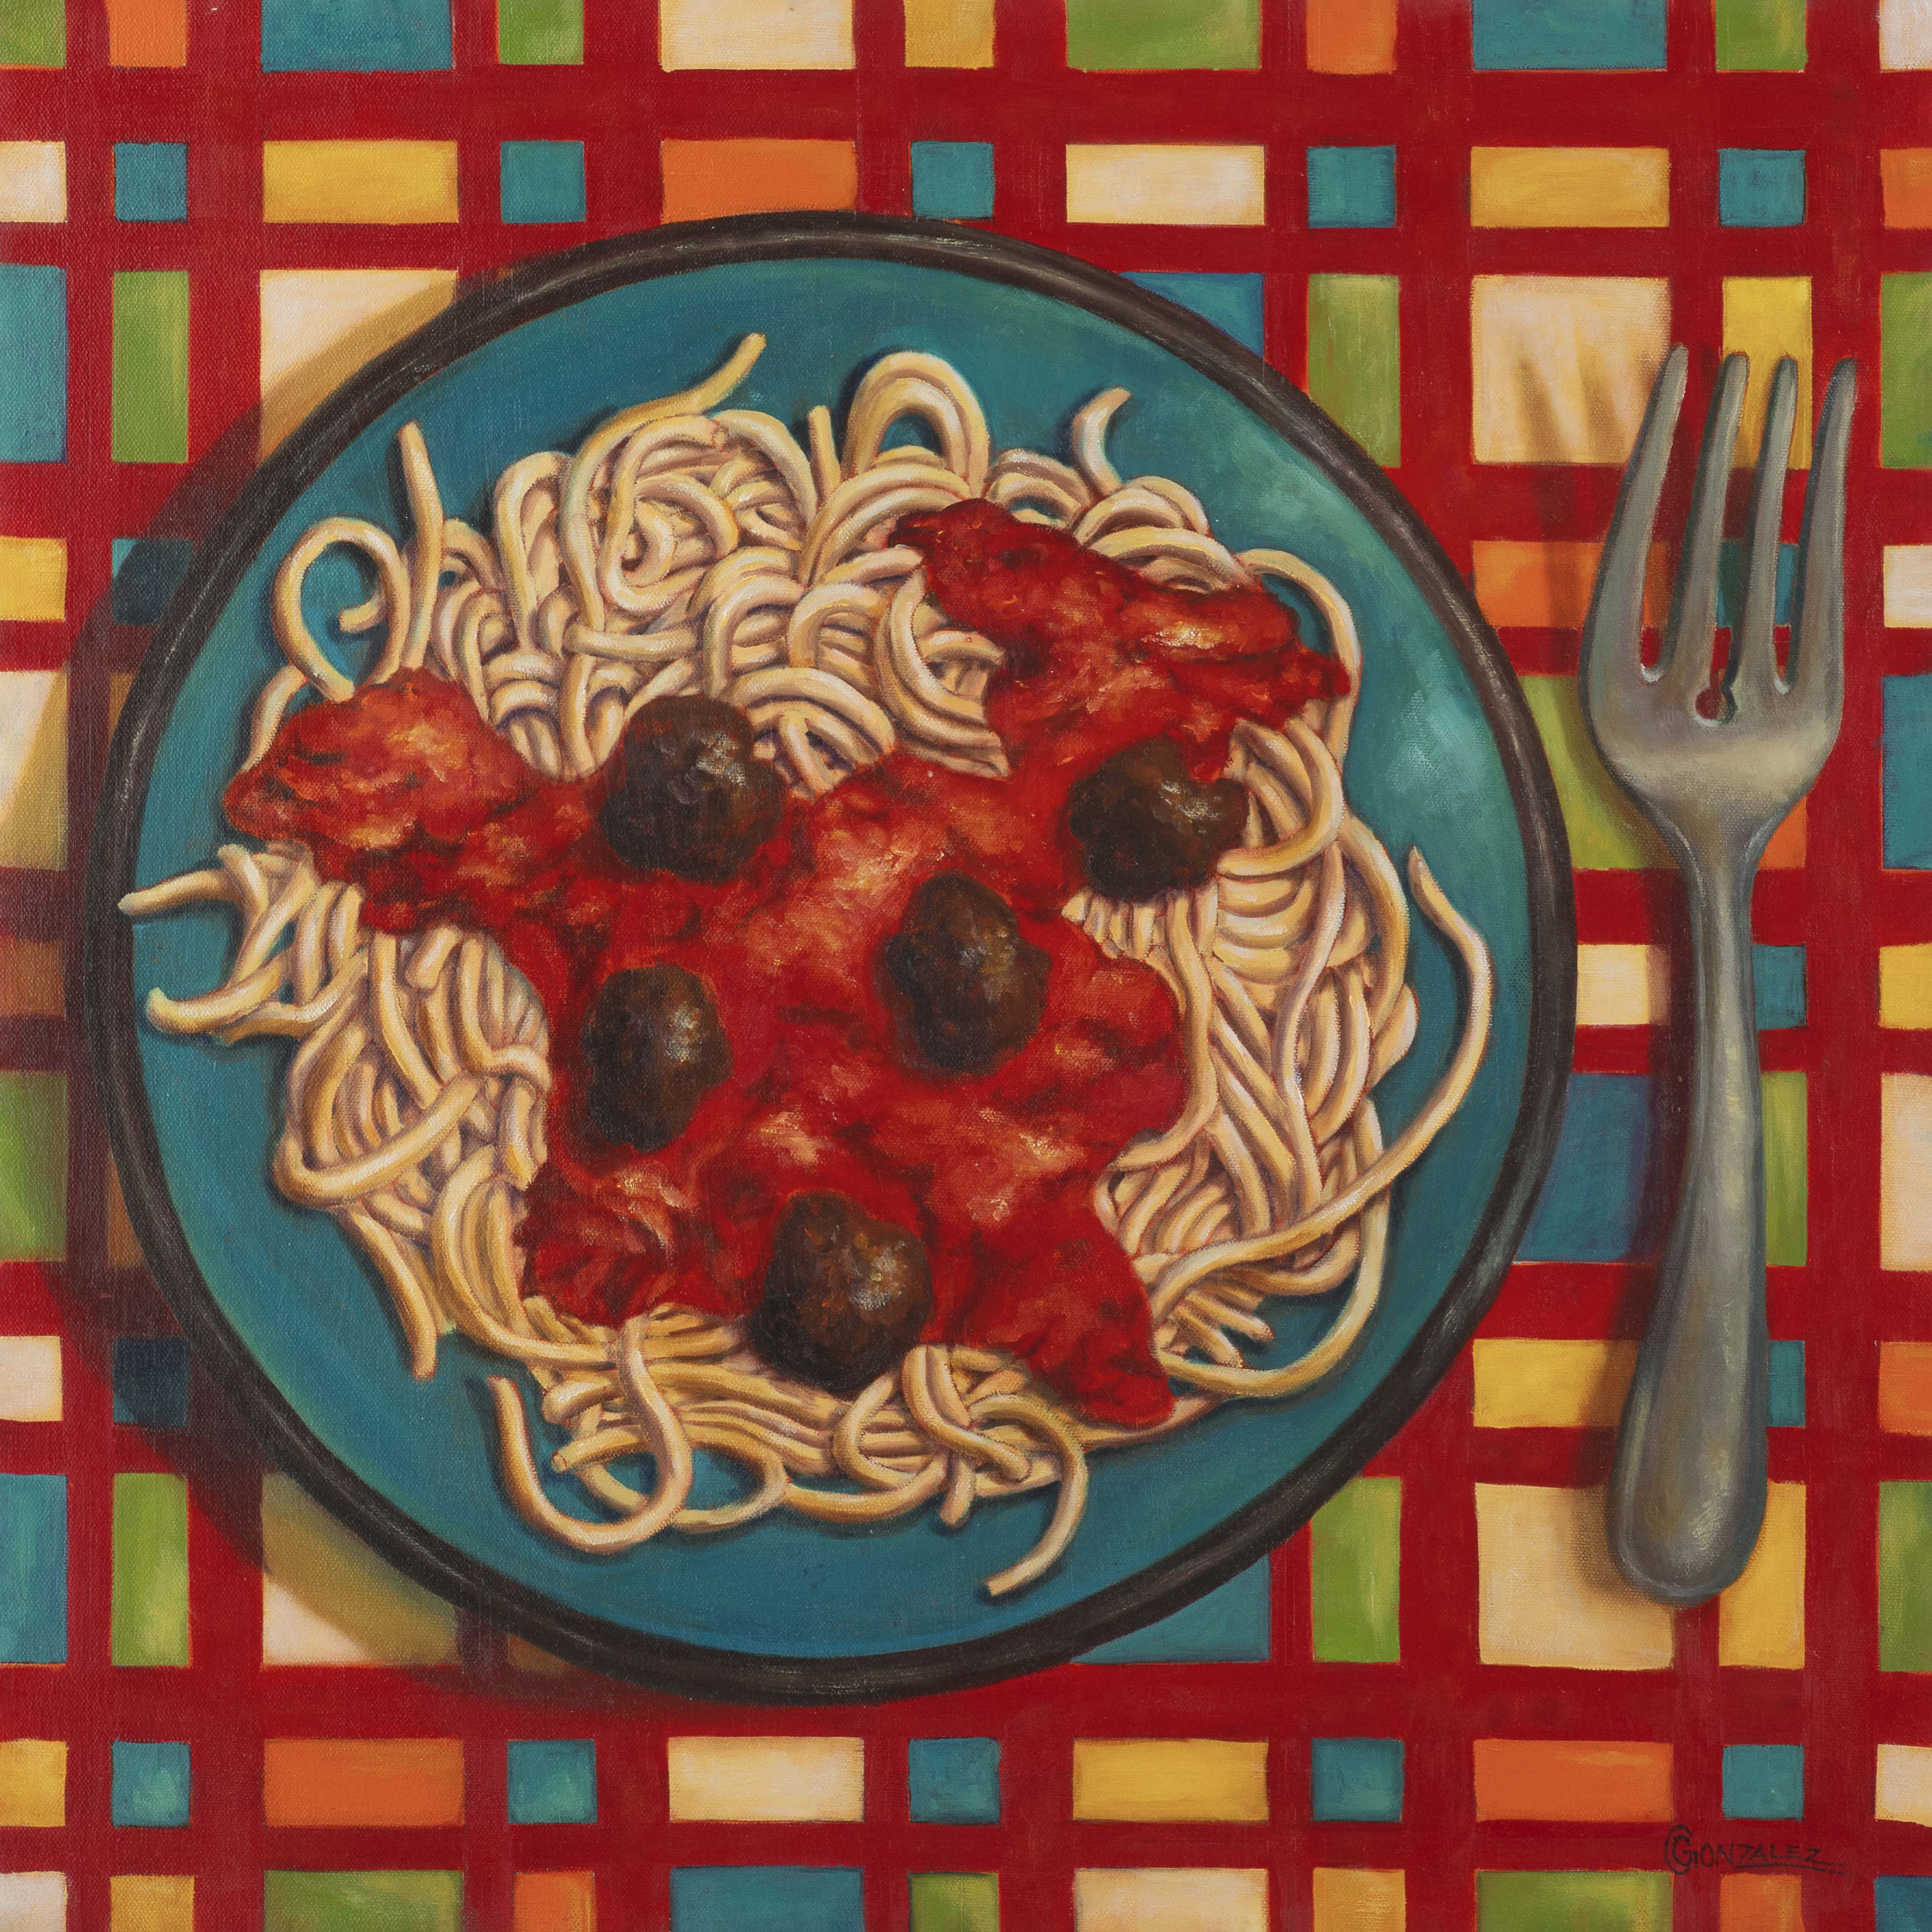 Carmen Gonzalez: 'bessghetti', 2016 Oil Painting, Food. My goal was to stimulate the vieweraEURtms senses of sight, taste, smell, and touch through realism and amplified colours.  I wanted my viewers to aEURoetaste it with their eyesaEUR which then triggers physical and emotional sensations causing hunger, thirst, joy, excitement, comfort, and perhaps guilt or regret...